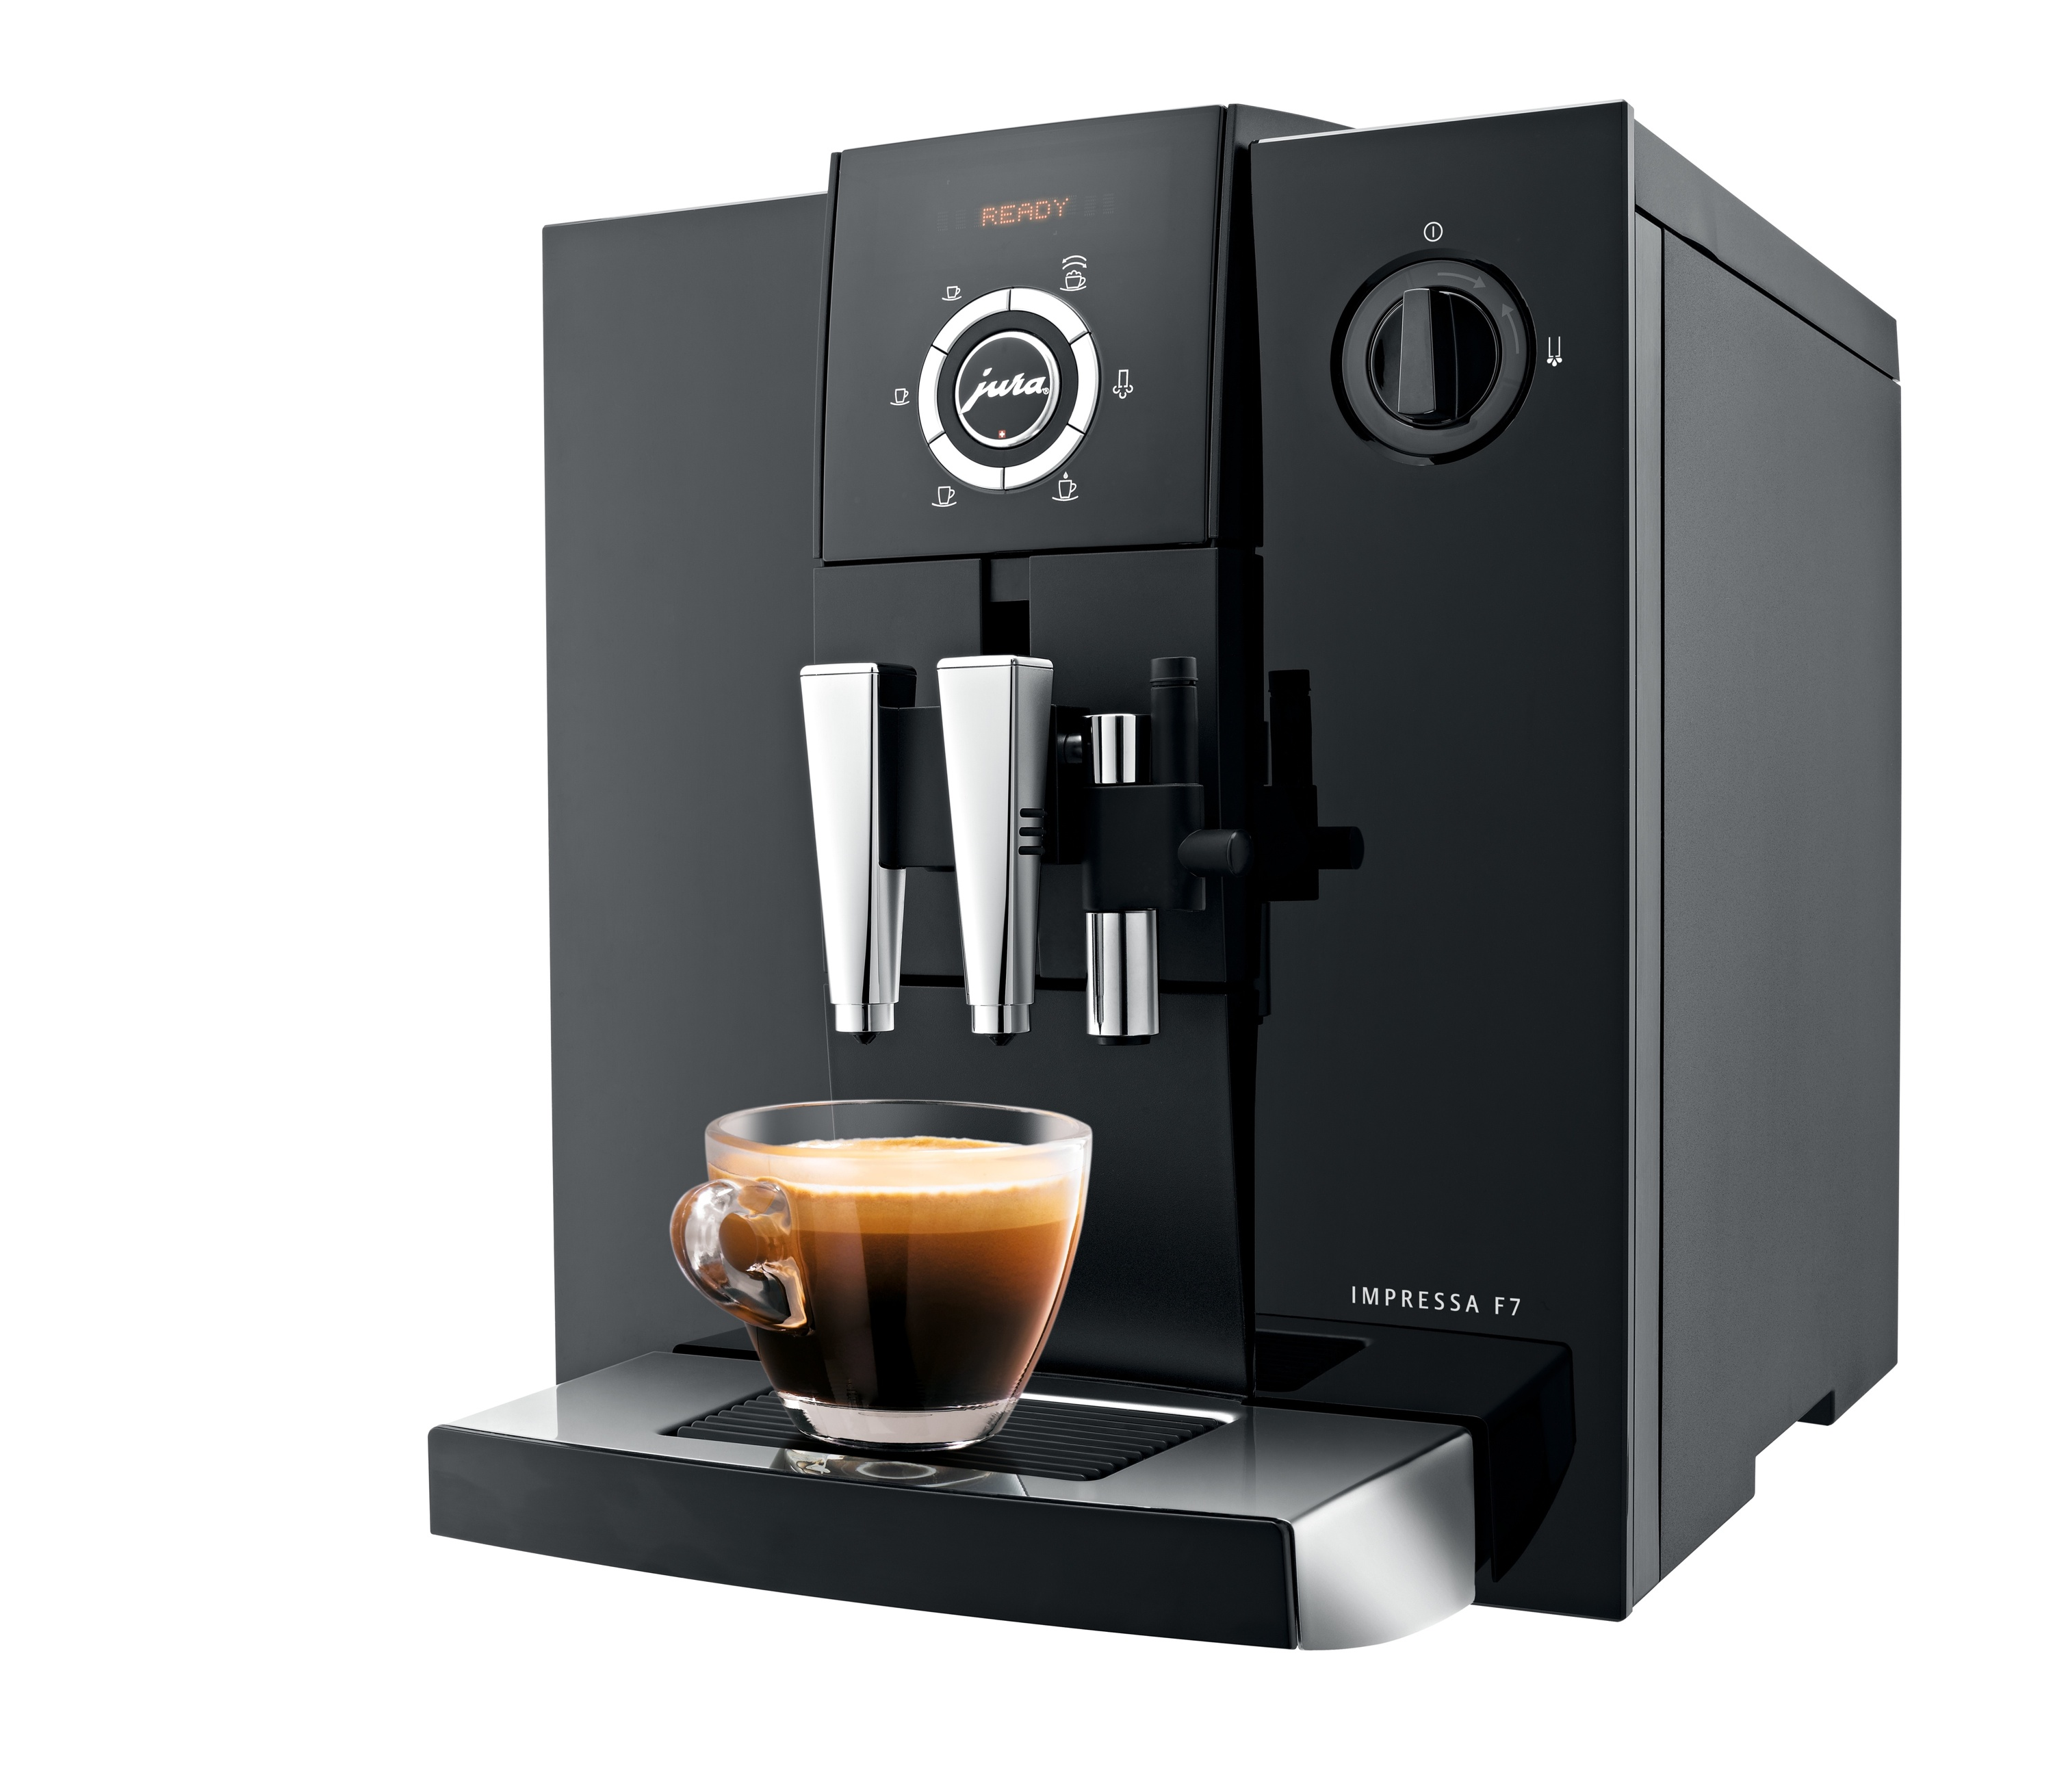 new jura impressa f7 with aroma grinder delivers espresso. Black Bedroom Furniture Sets. Home Design Ideas